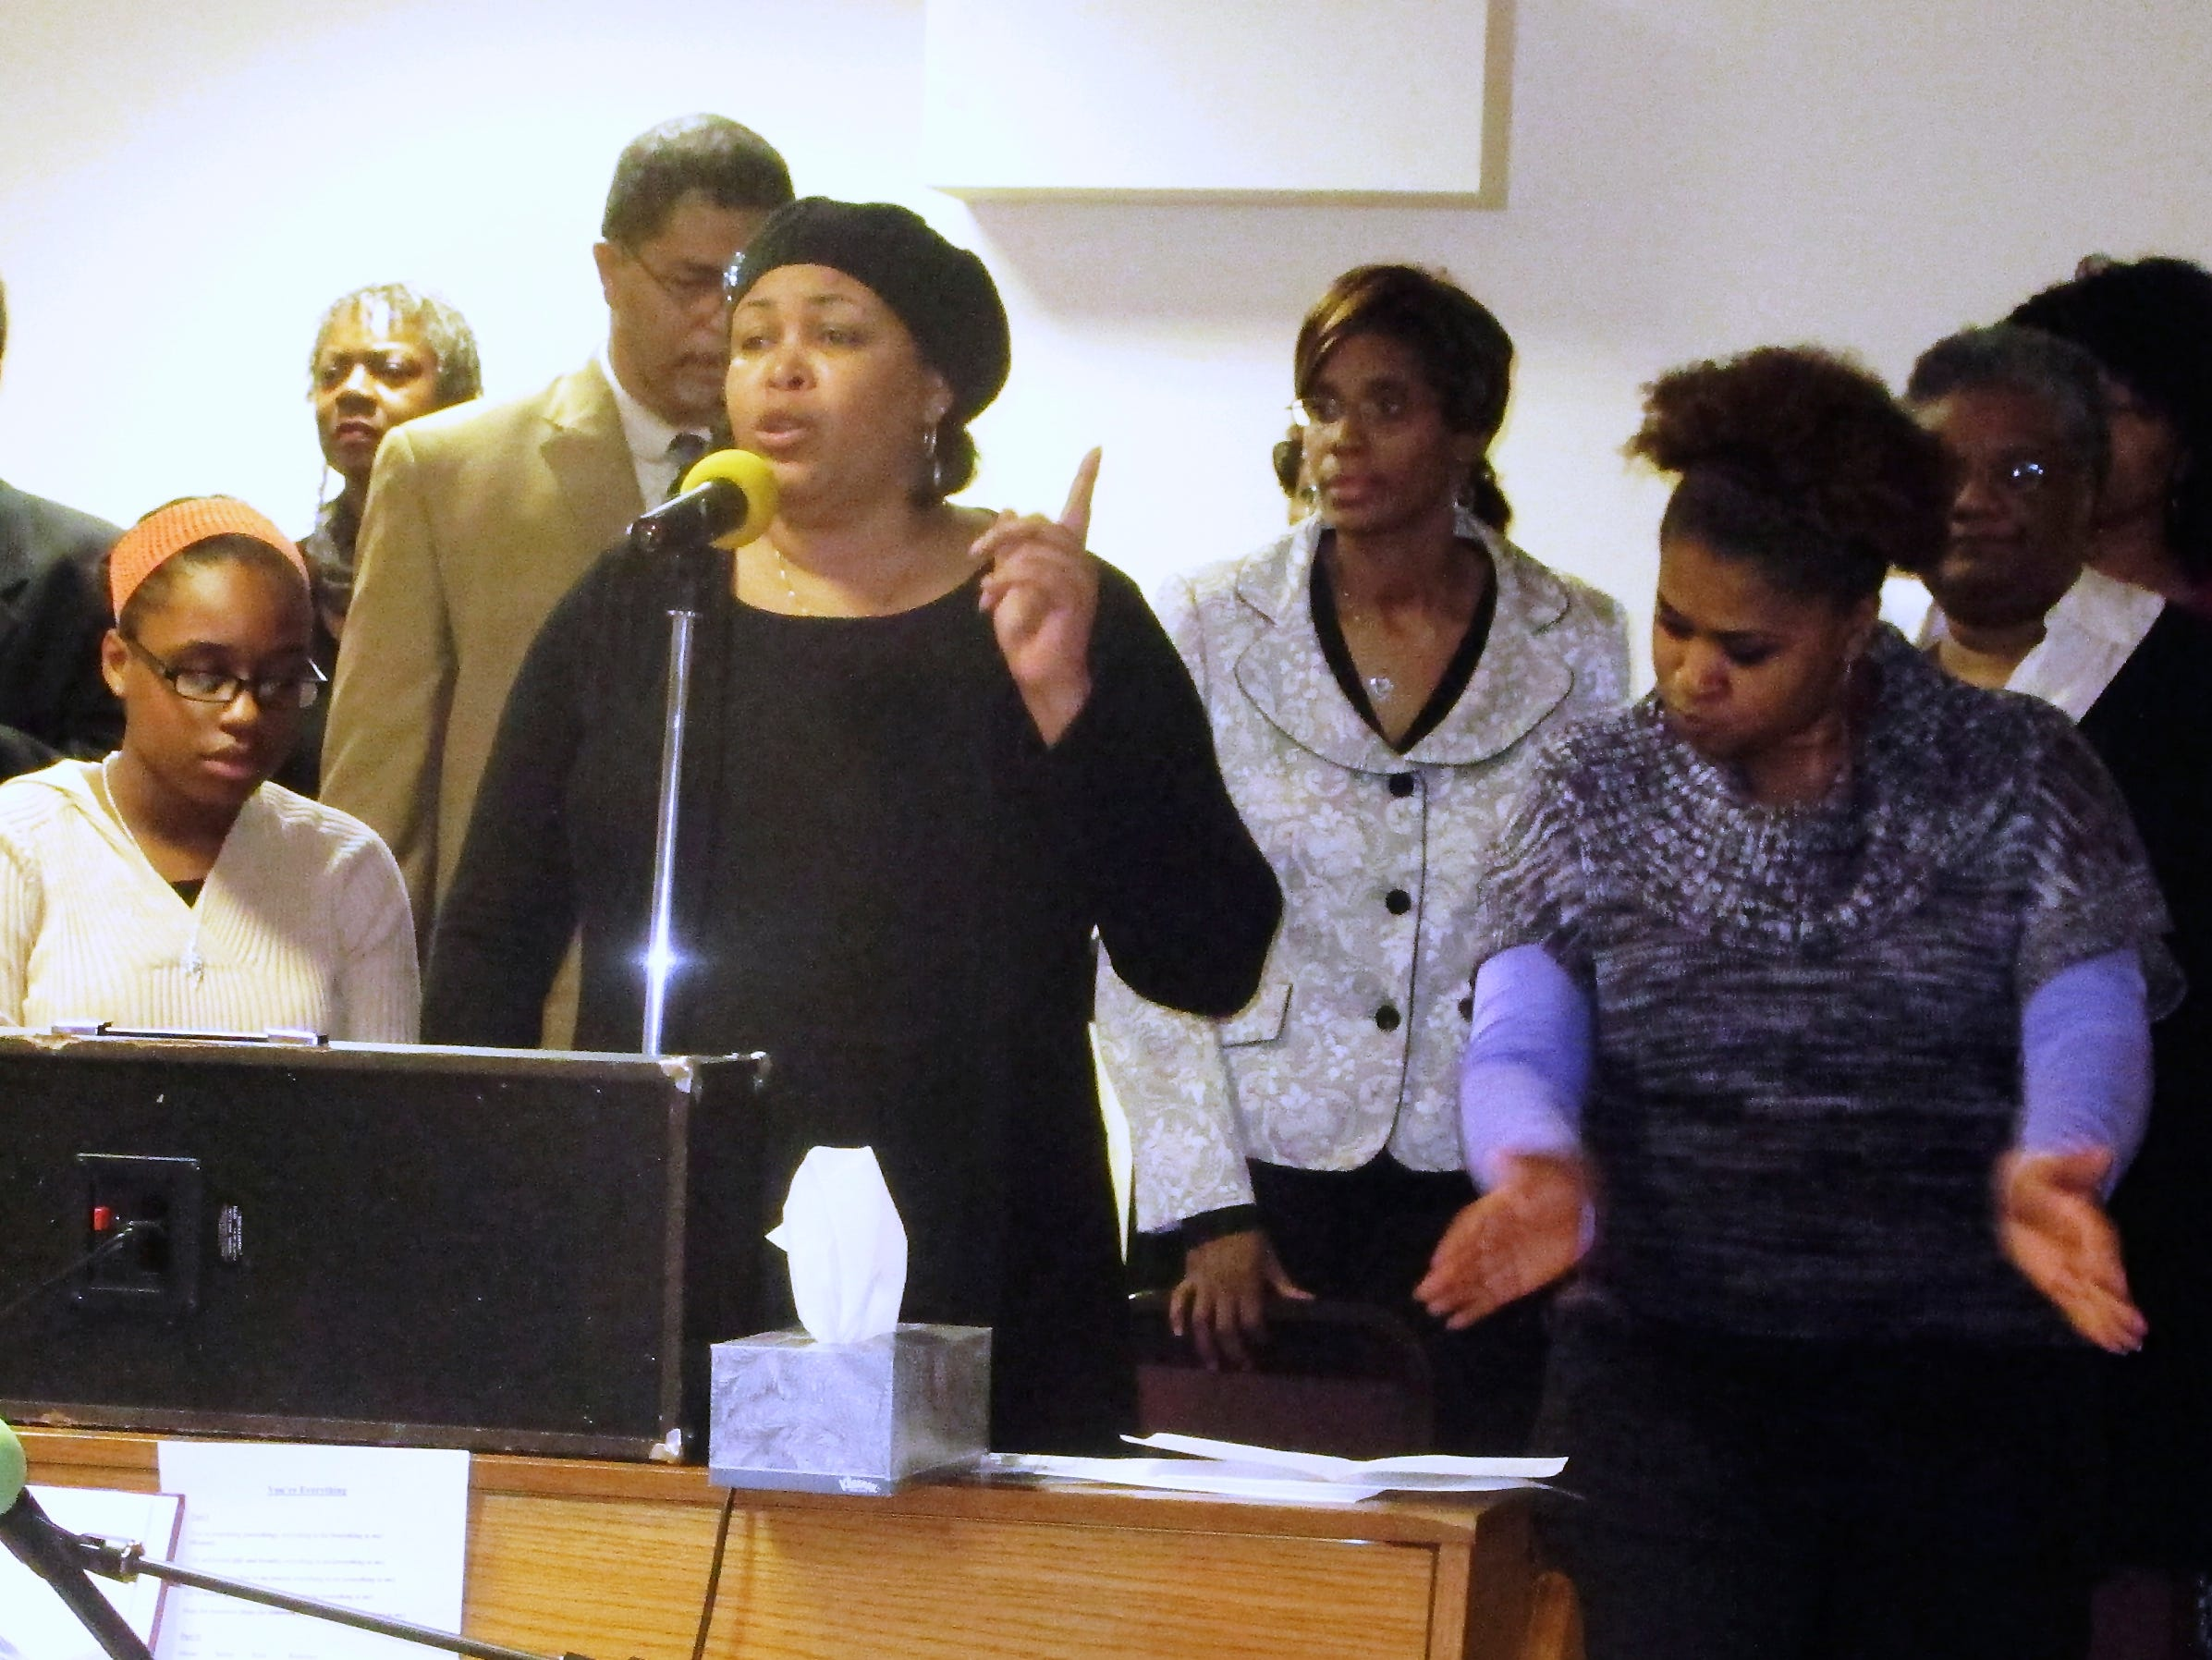 2014: Members of the AIM Community Choir perform Sunday during a Martin Luther King community celebration at St. Paul Missionary Baptist Church in Elmira.